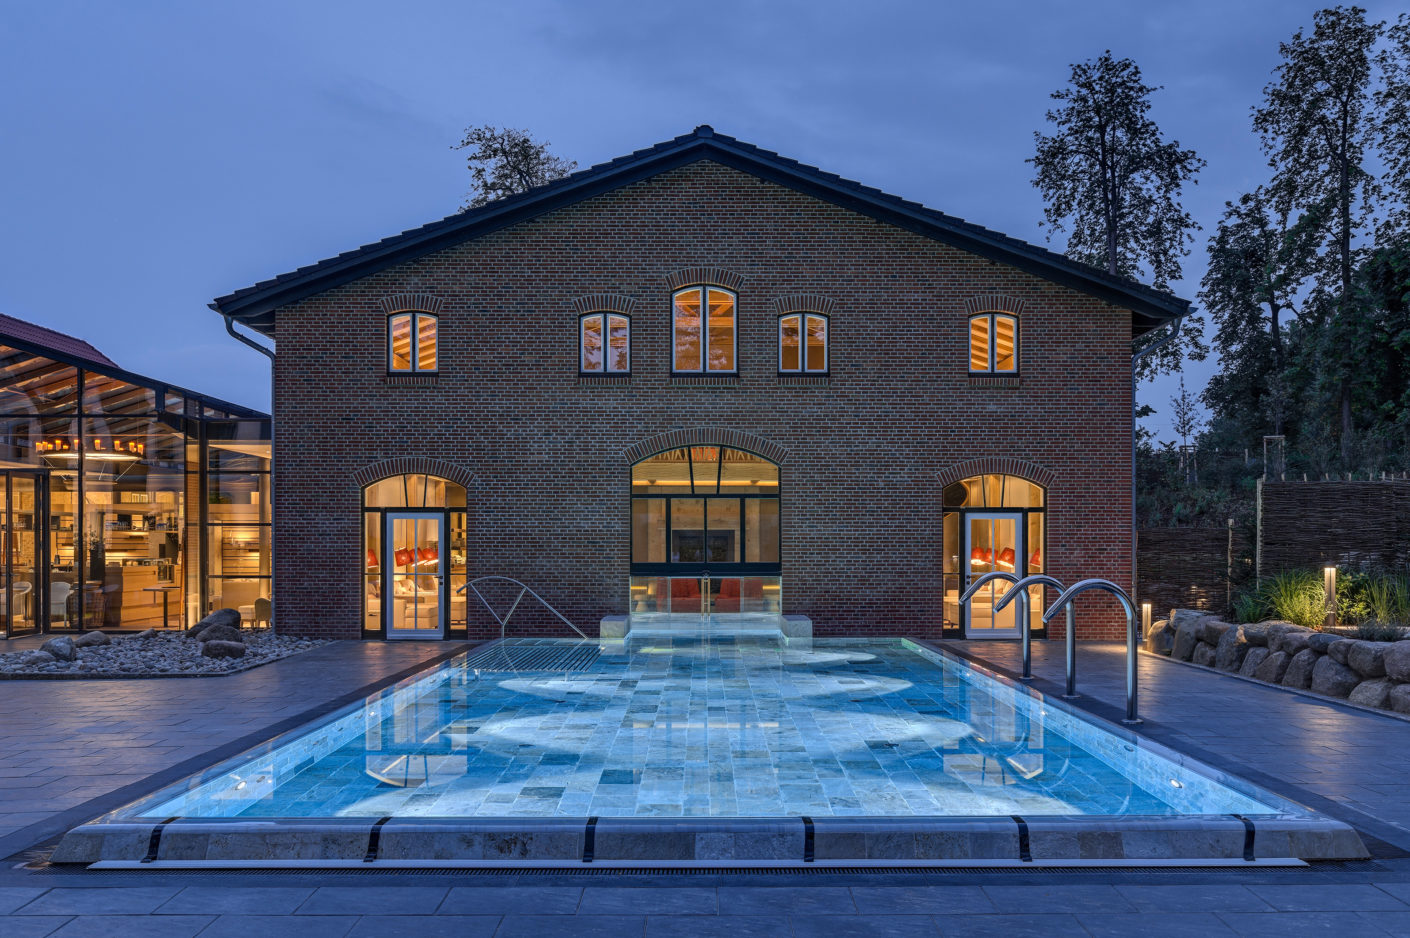 The thermal spring of the manor in the historic coach house also has an outdoor pool.